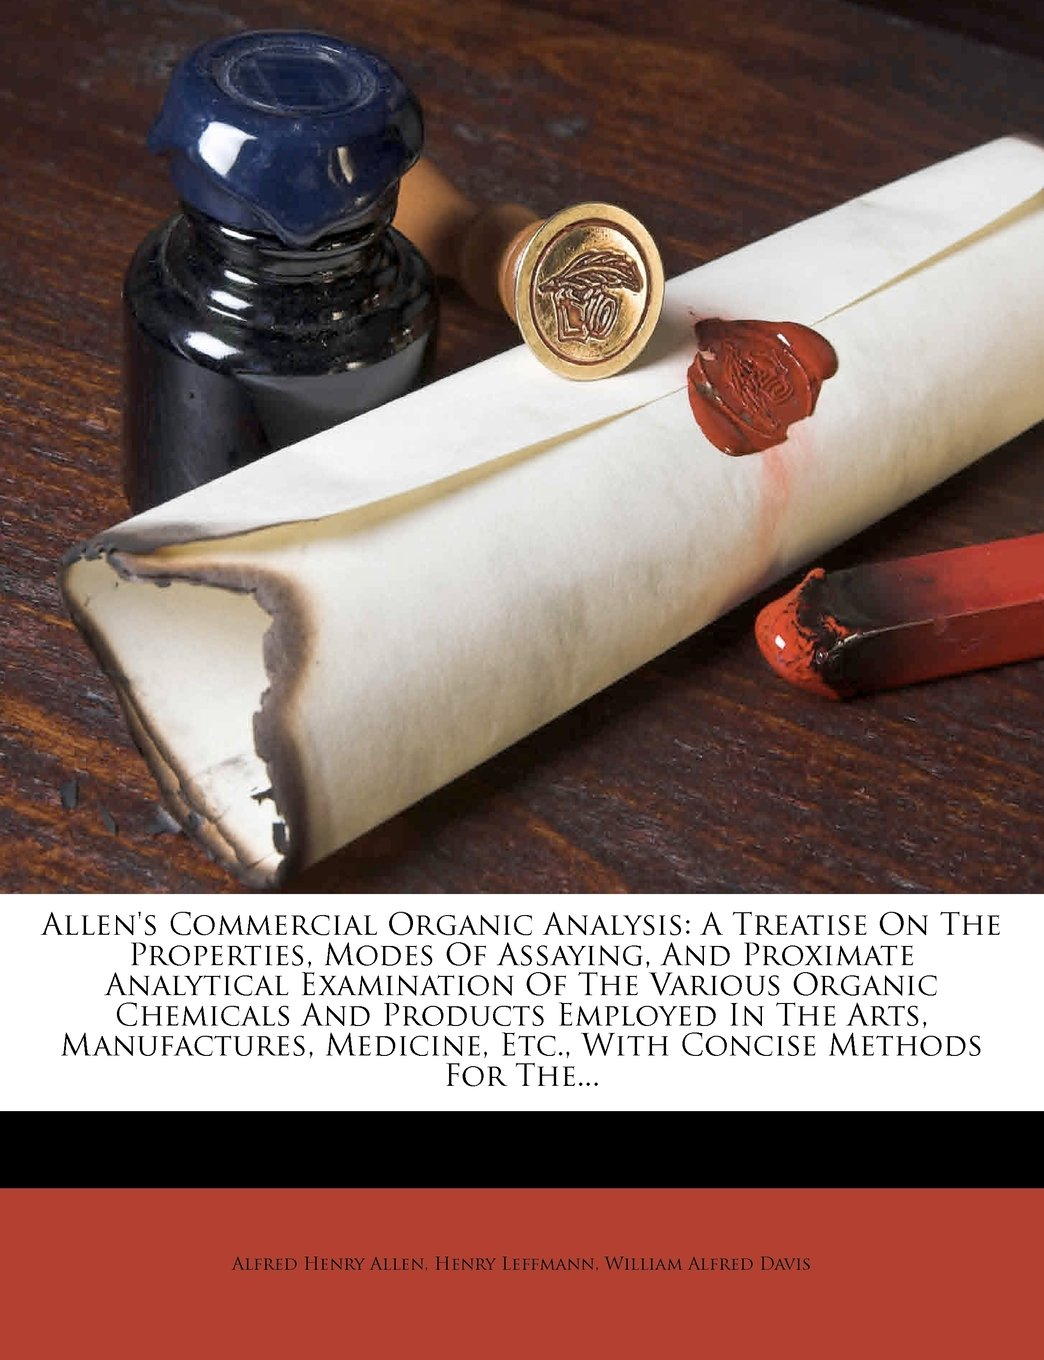 Allen's Commercial Organic Analysis: A Treatise On The Properties, Modes Of Assaying, And Proximate Analytical Examination Of The Various Organic ... Etc., With Concise Methods For The... pdf epub